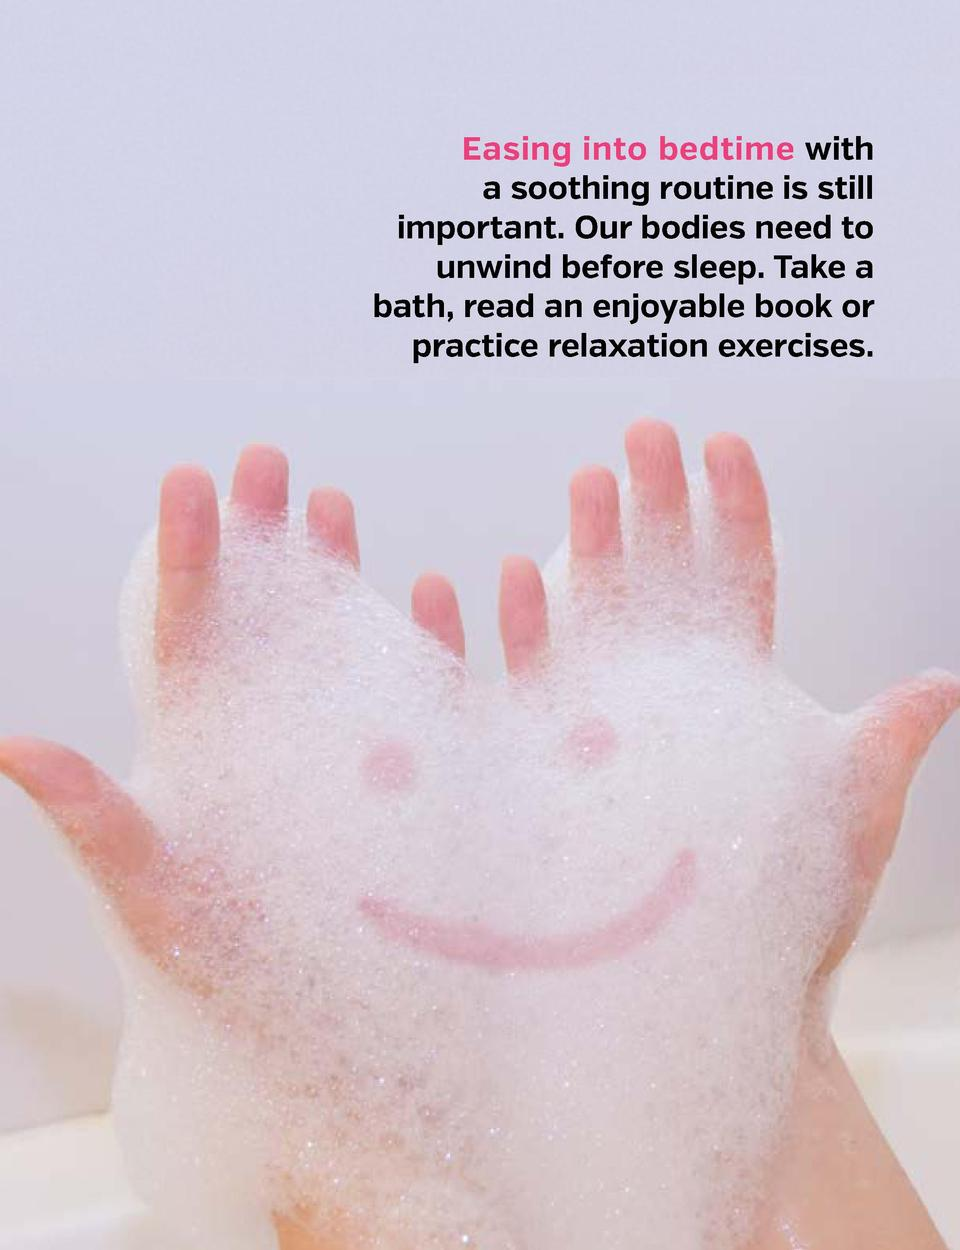 Easing into bedtime with a soothing routine is still important. Our bodies need to unwind before sleep. Take a bath, read ...